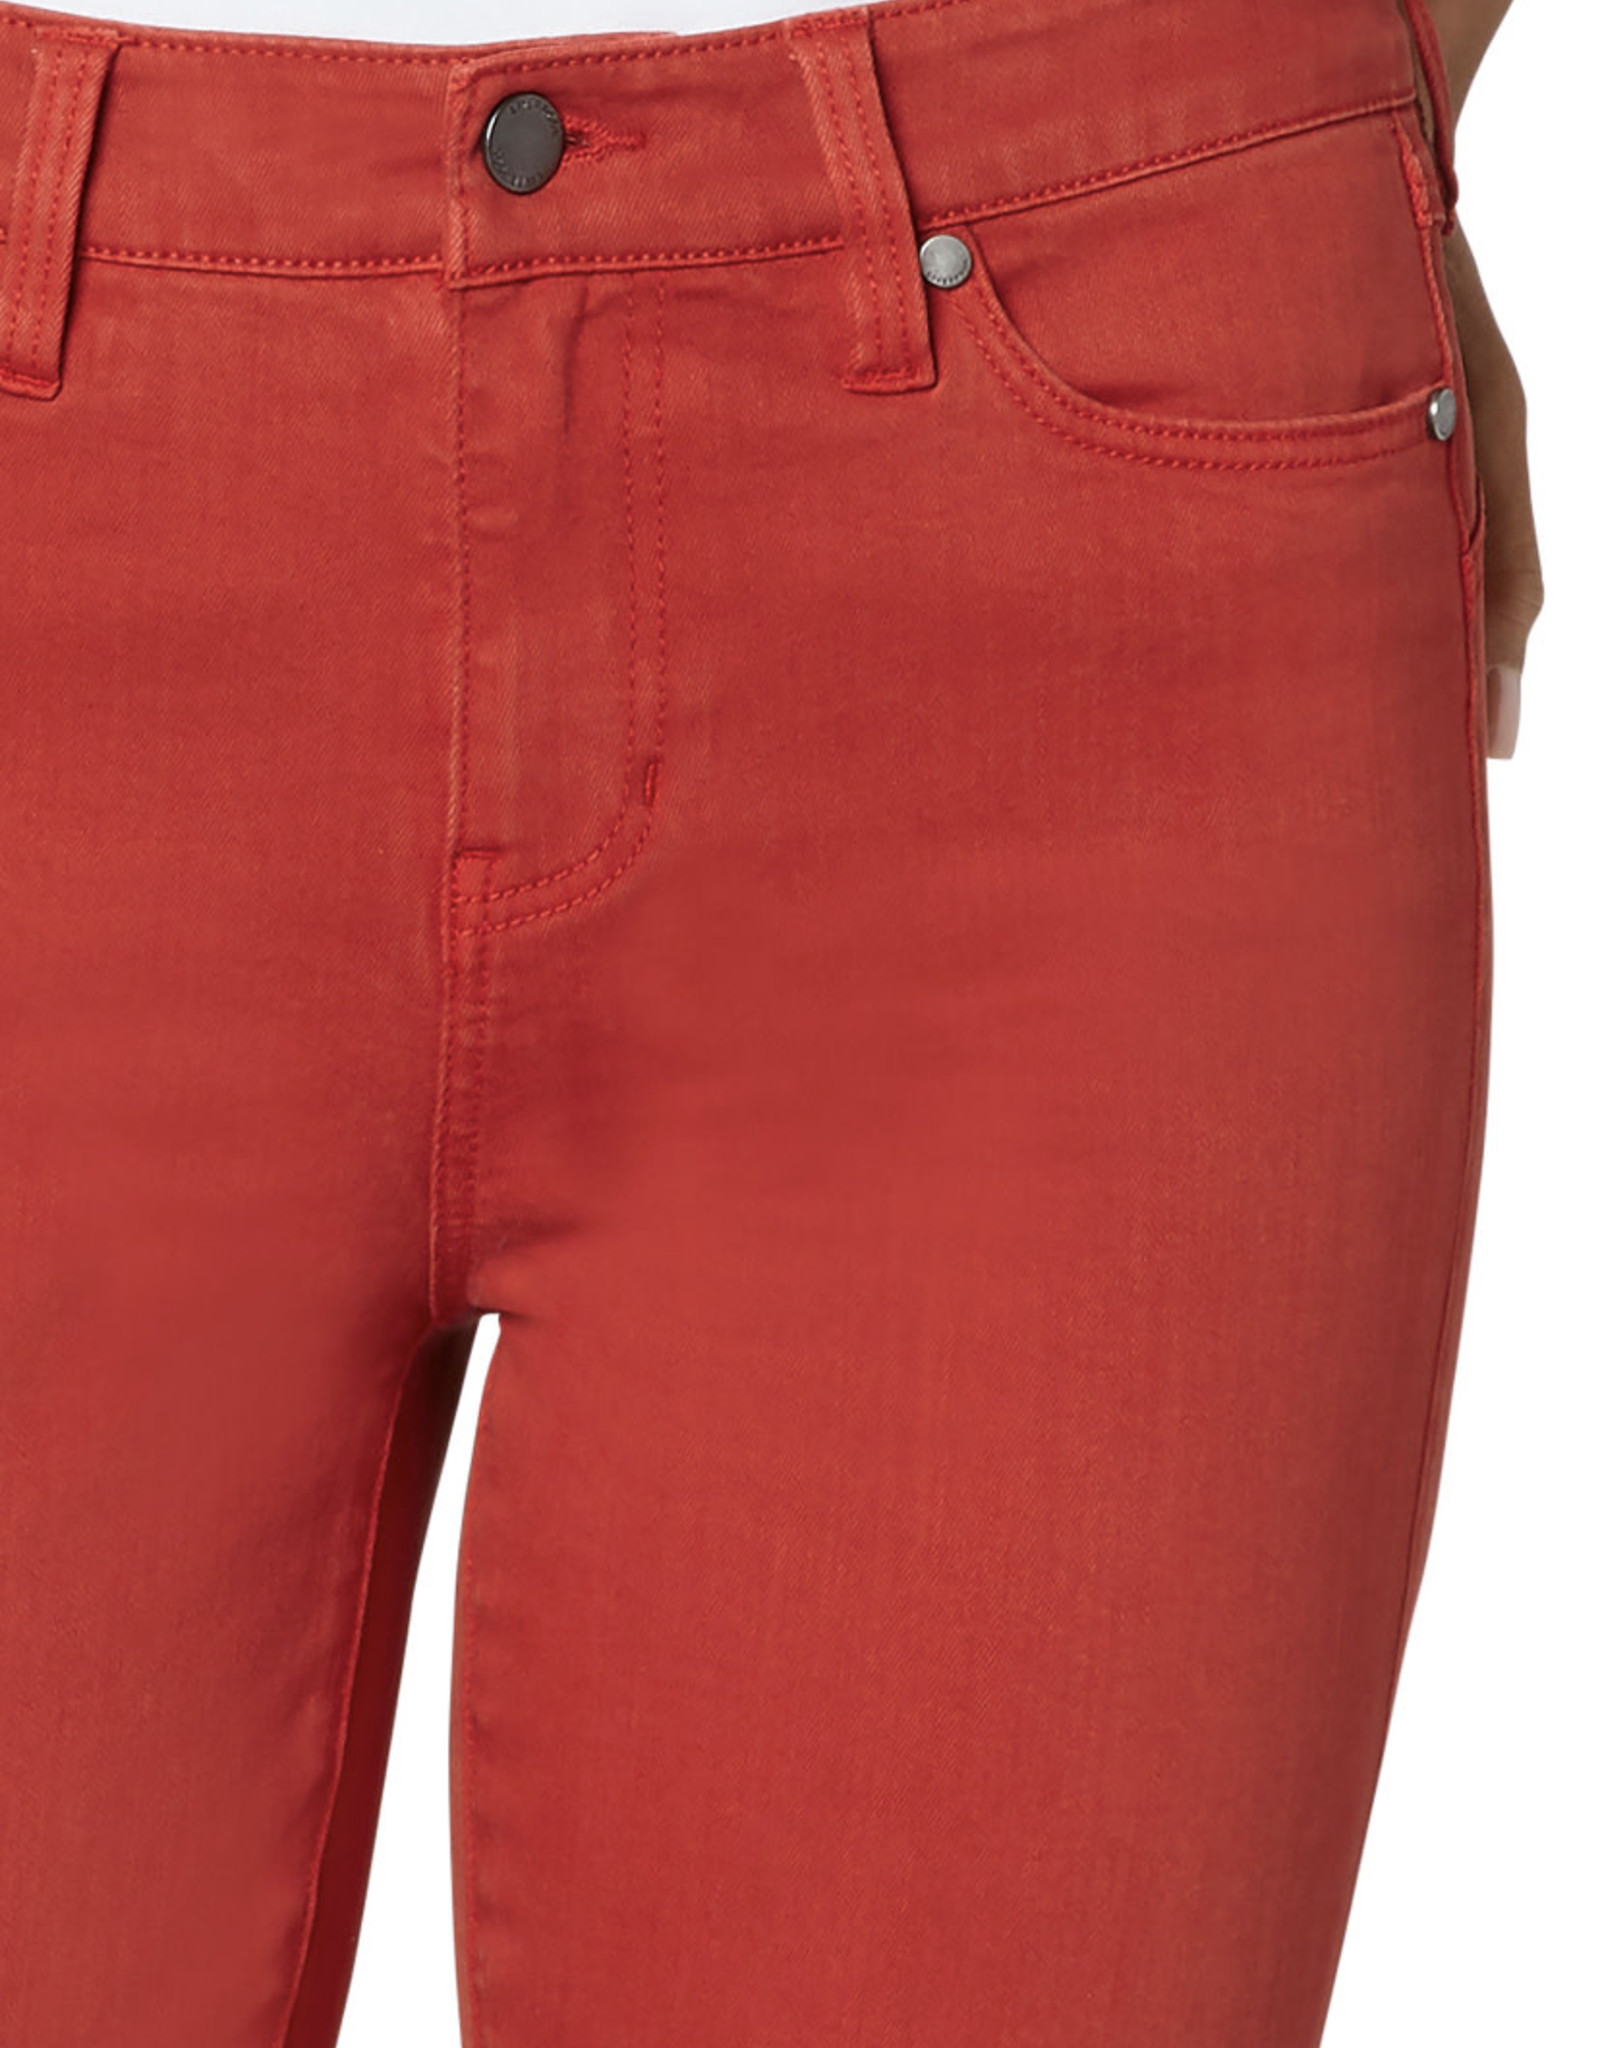 Liverpool Piper Hugger ankle skinny red